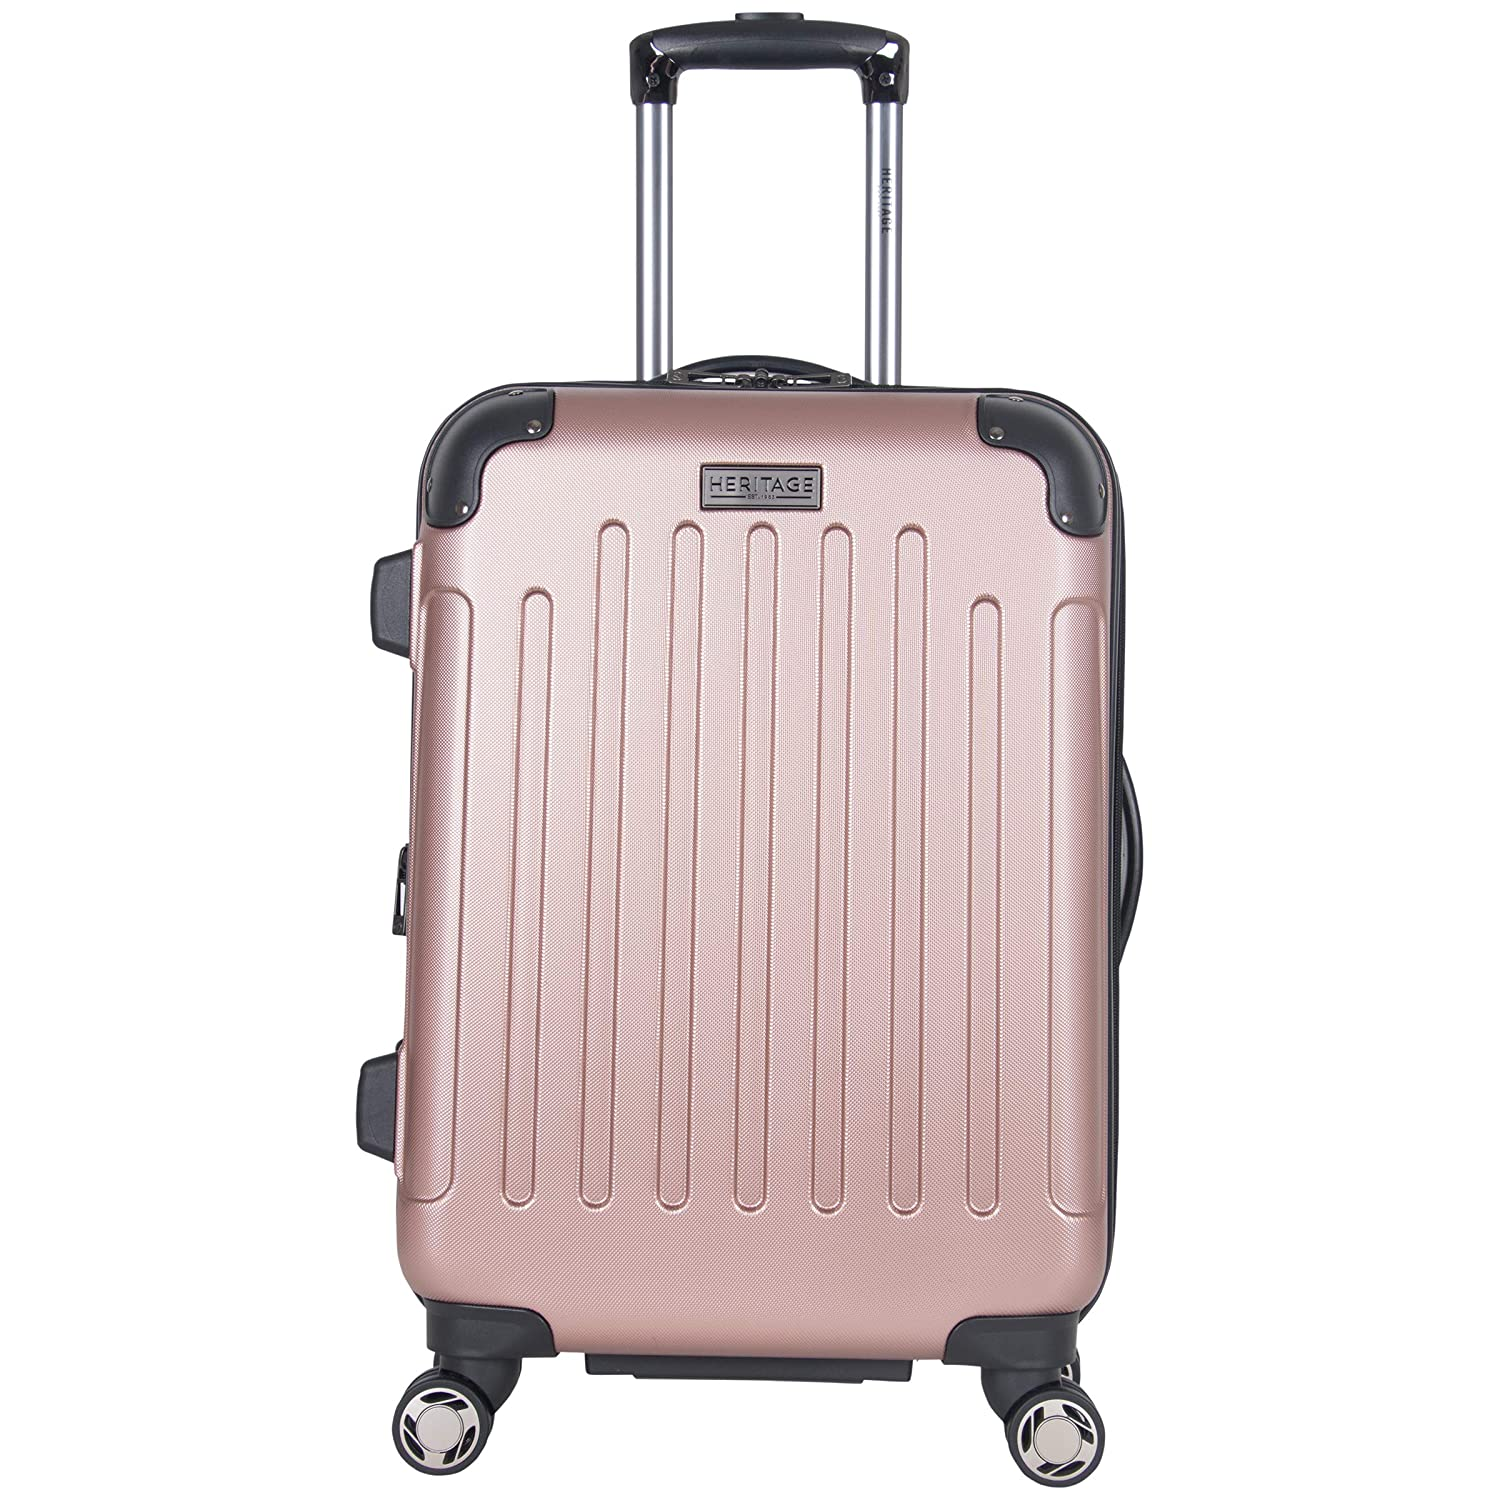 Heritage Travelware Logan Square 20 Lightweight Hardside Expandable 8-Wheel Spinner Carry-On Suitcase, Metallic Rose Gold